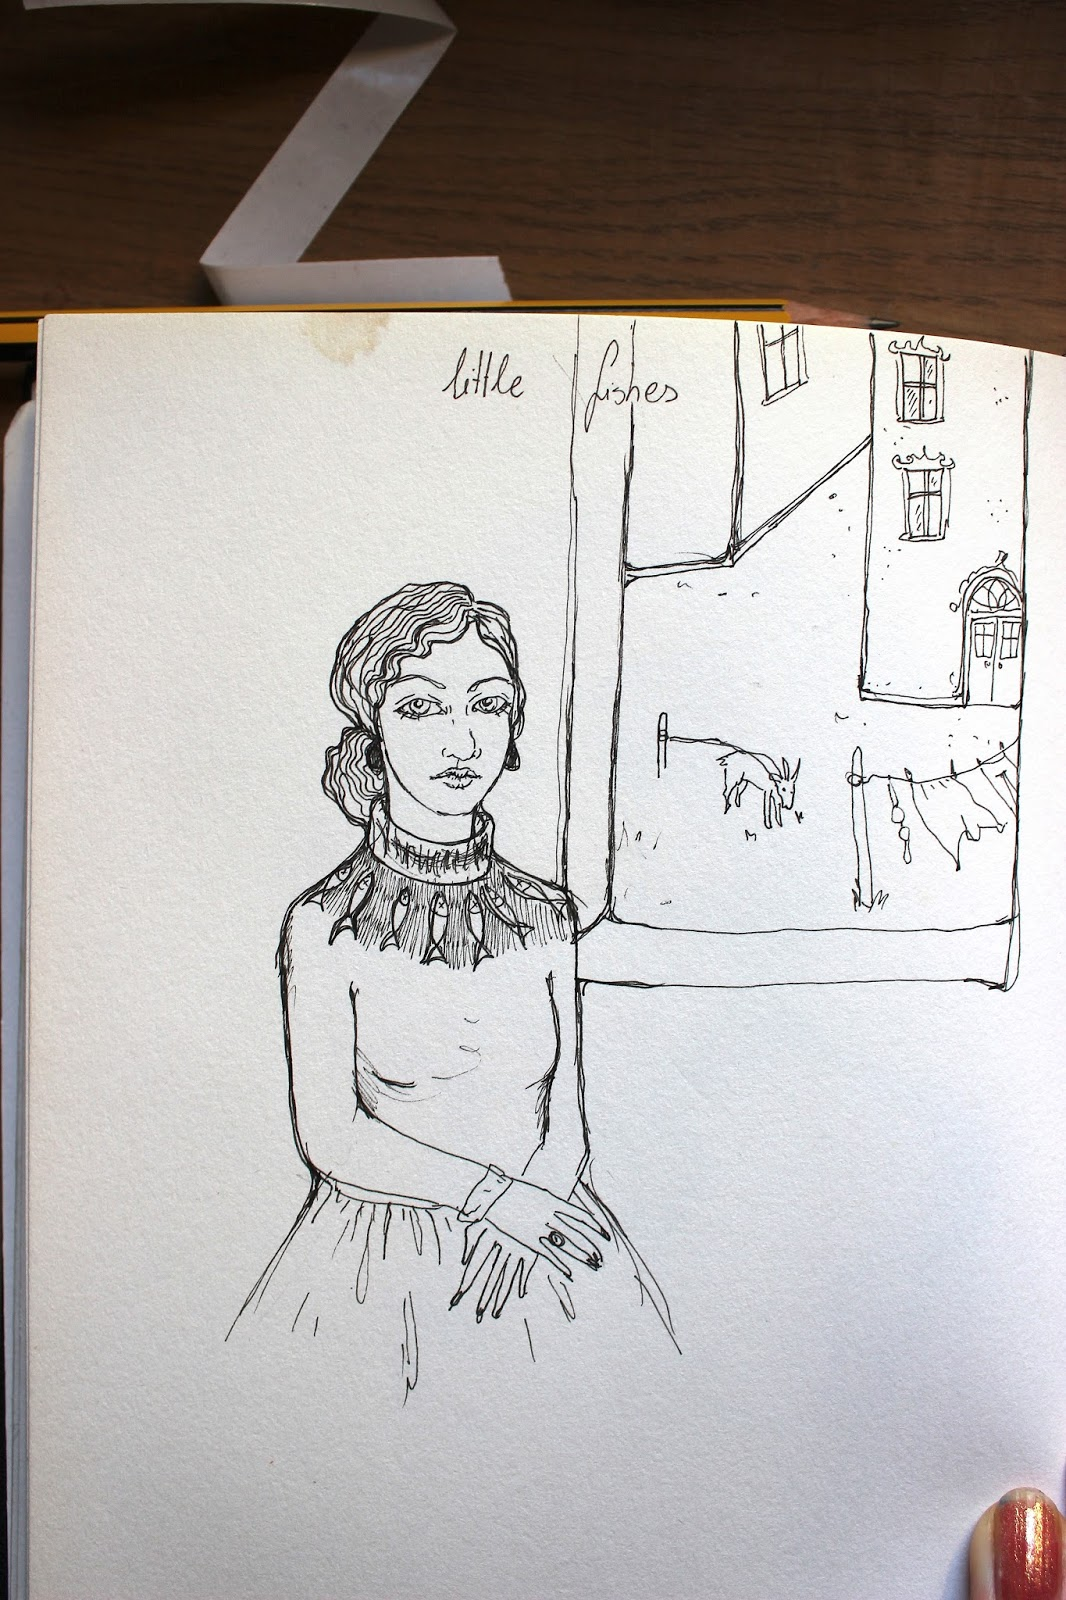 Sketchpad Notebook Sketch Drawing Pencil Girl By Window